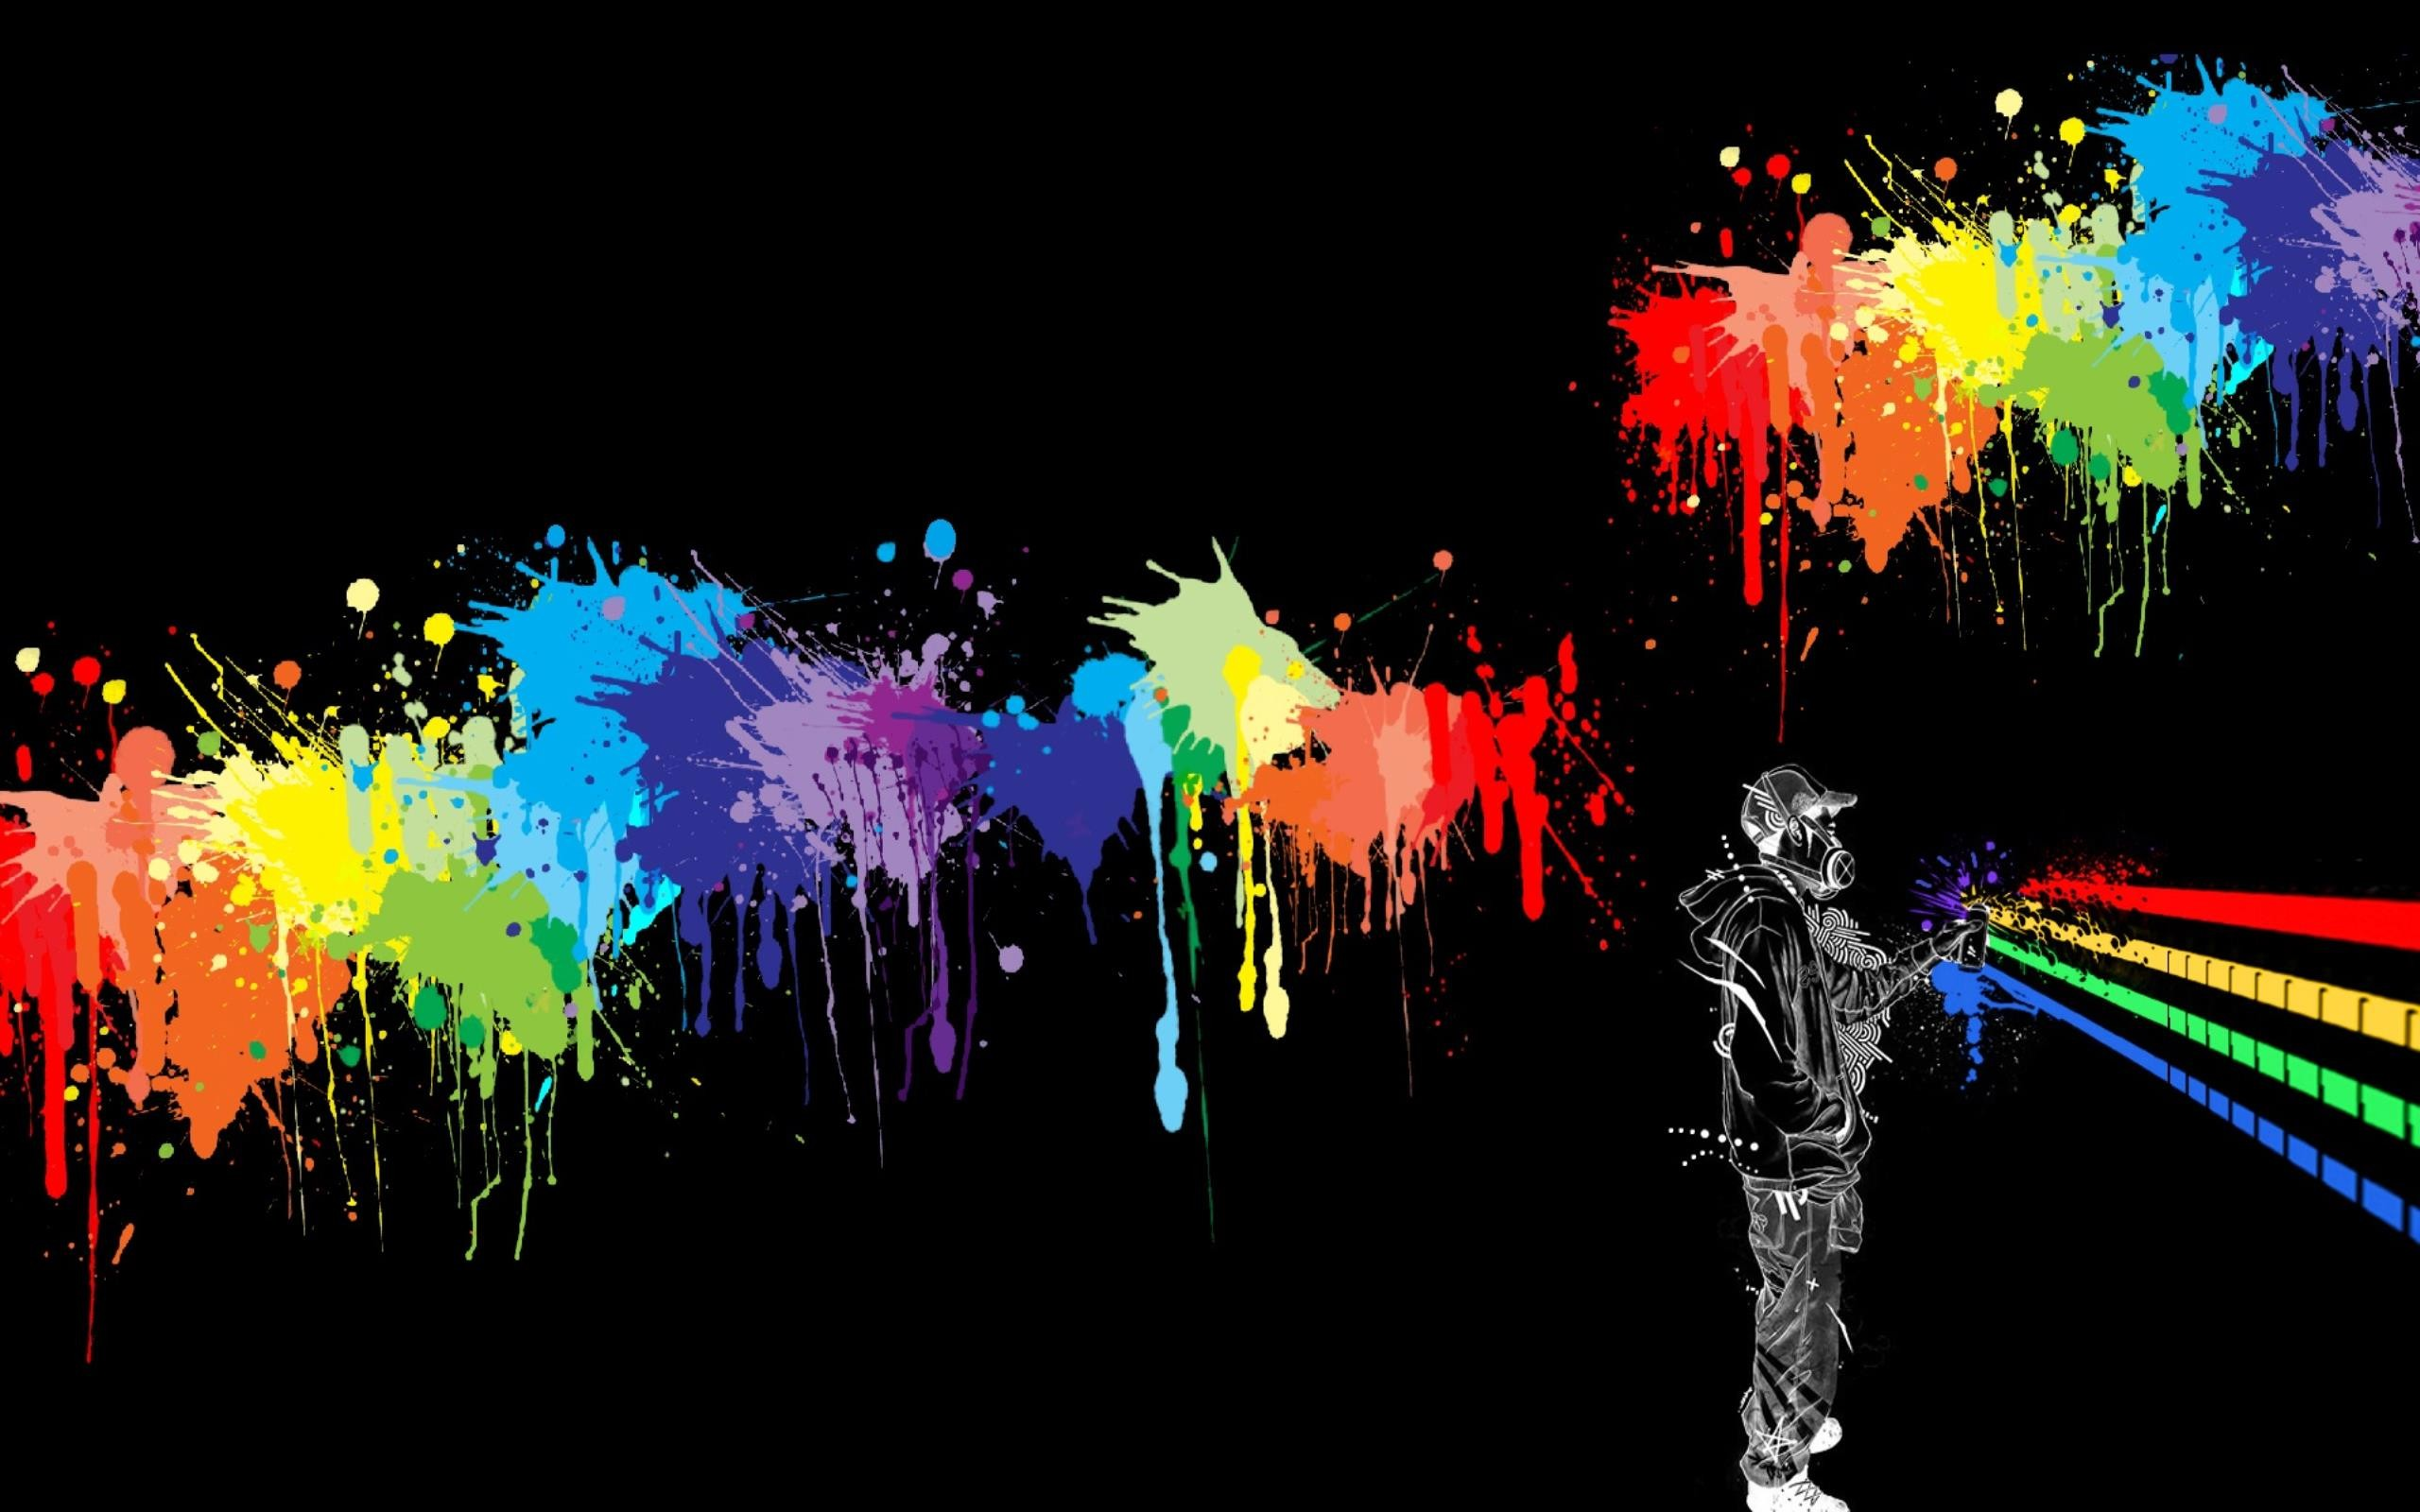 2560x1600 Abstract Colorfull Spray Paint Wallpaper